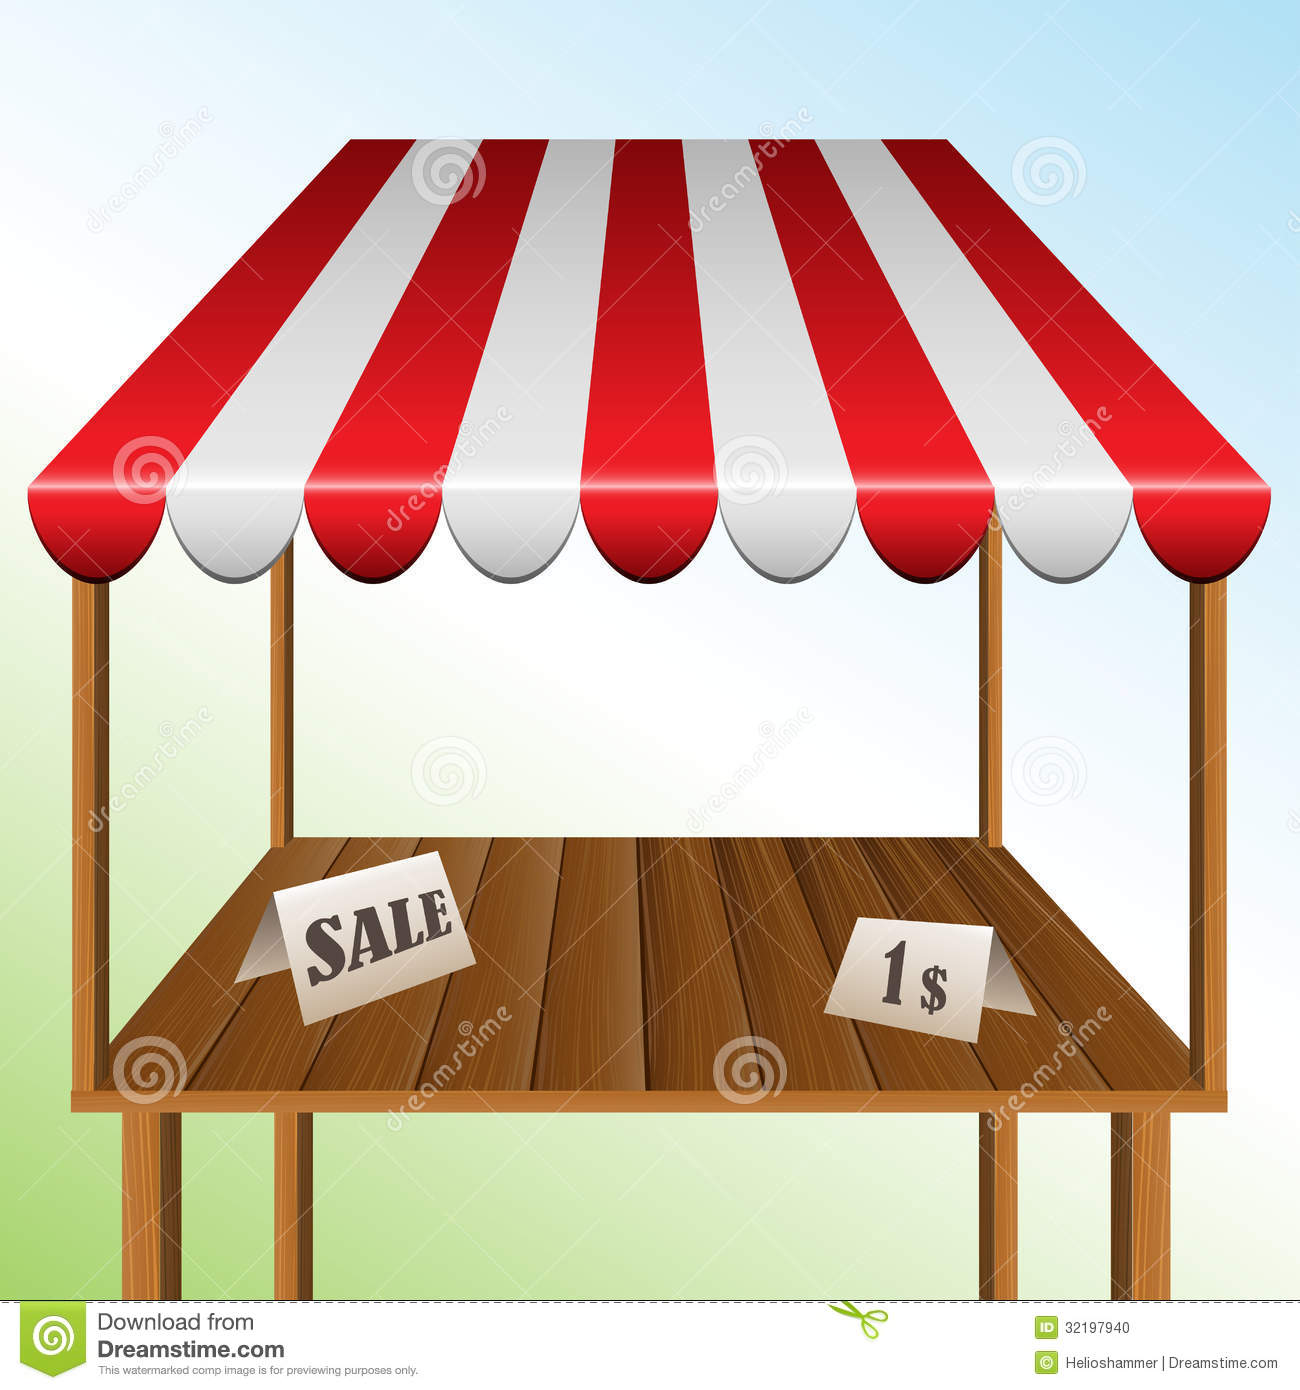 Sale Table With Stripped Awning Stock Vector Image 32197940